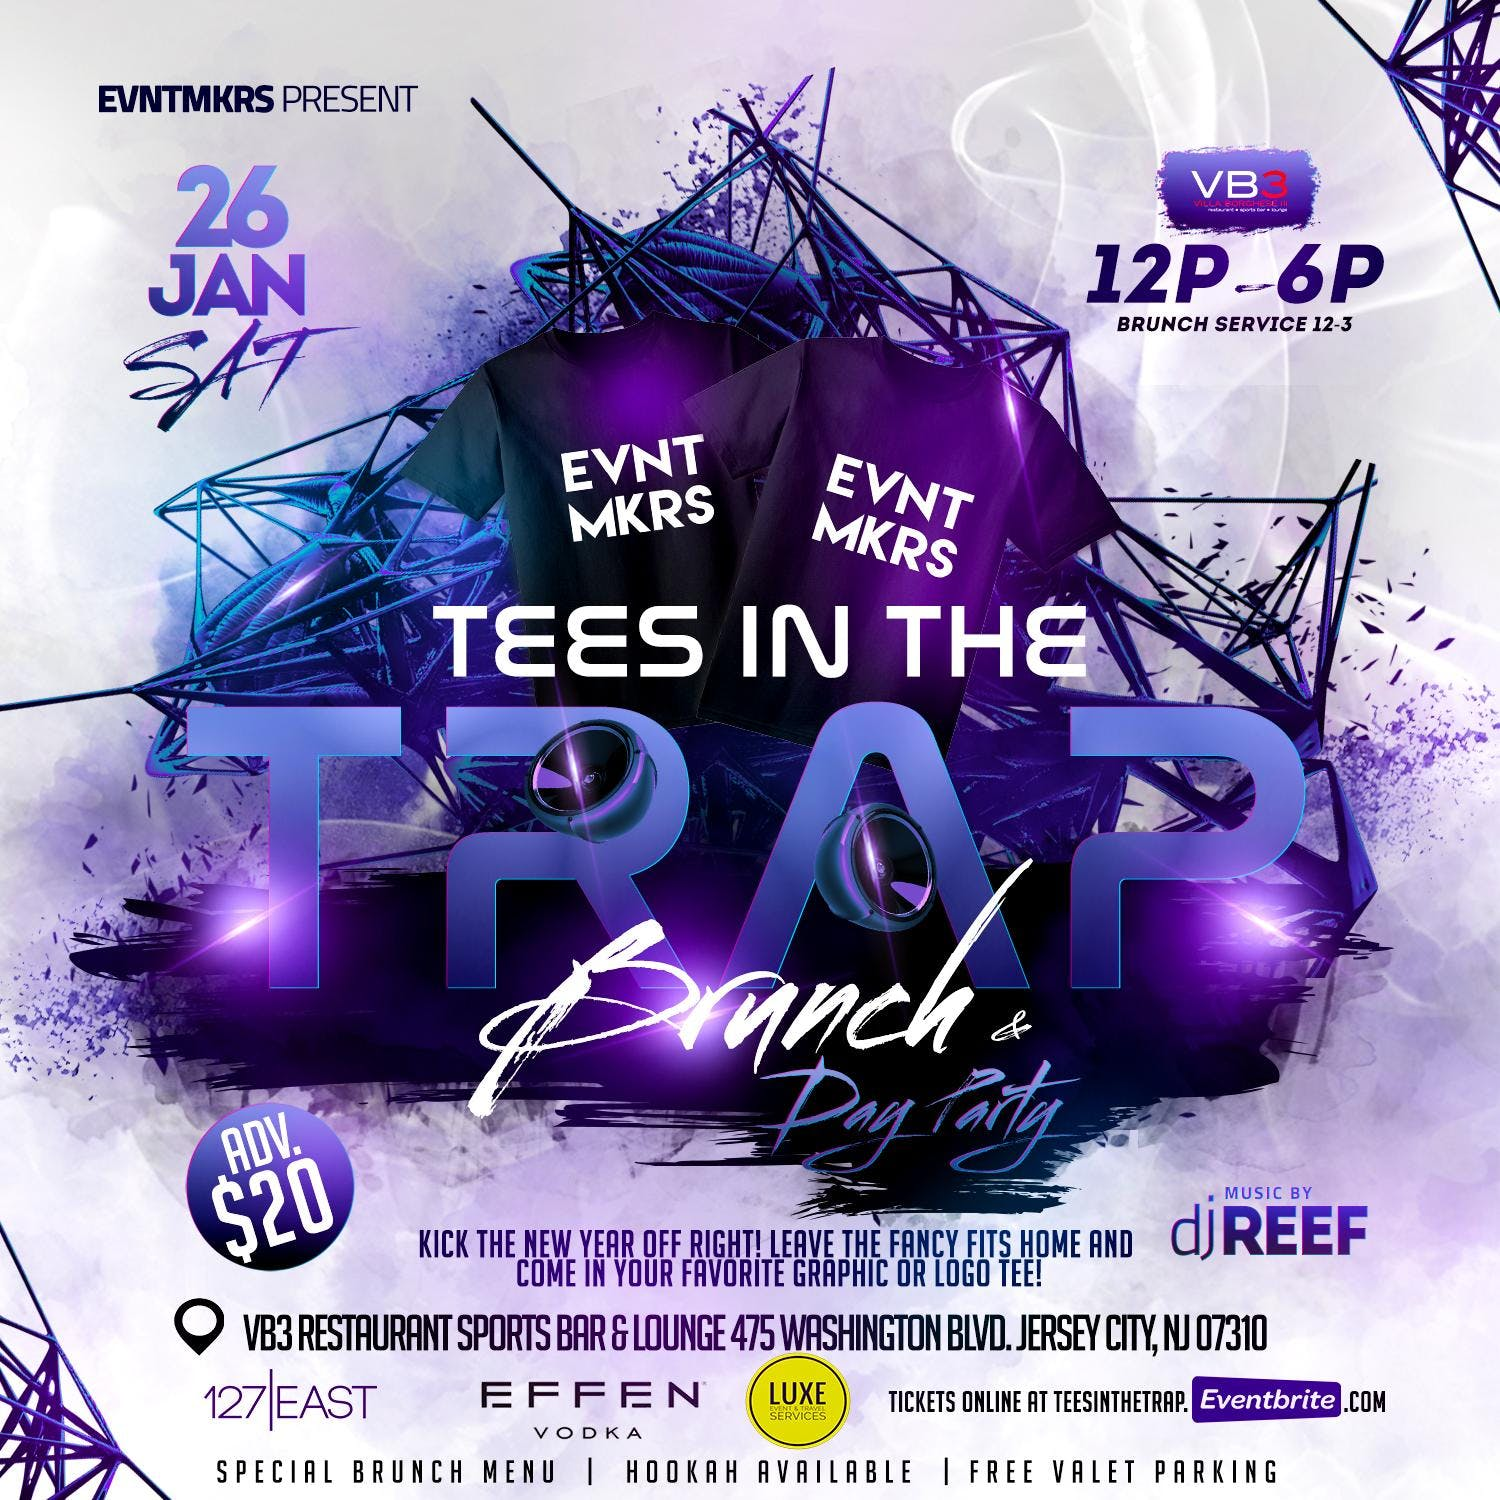 84d1fb68e Tees in the Trap Brunch - 26 JAN 2019